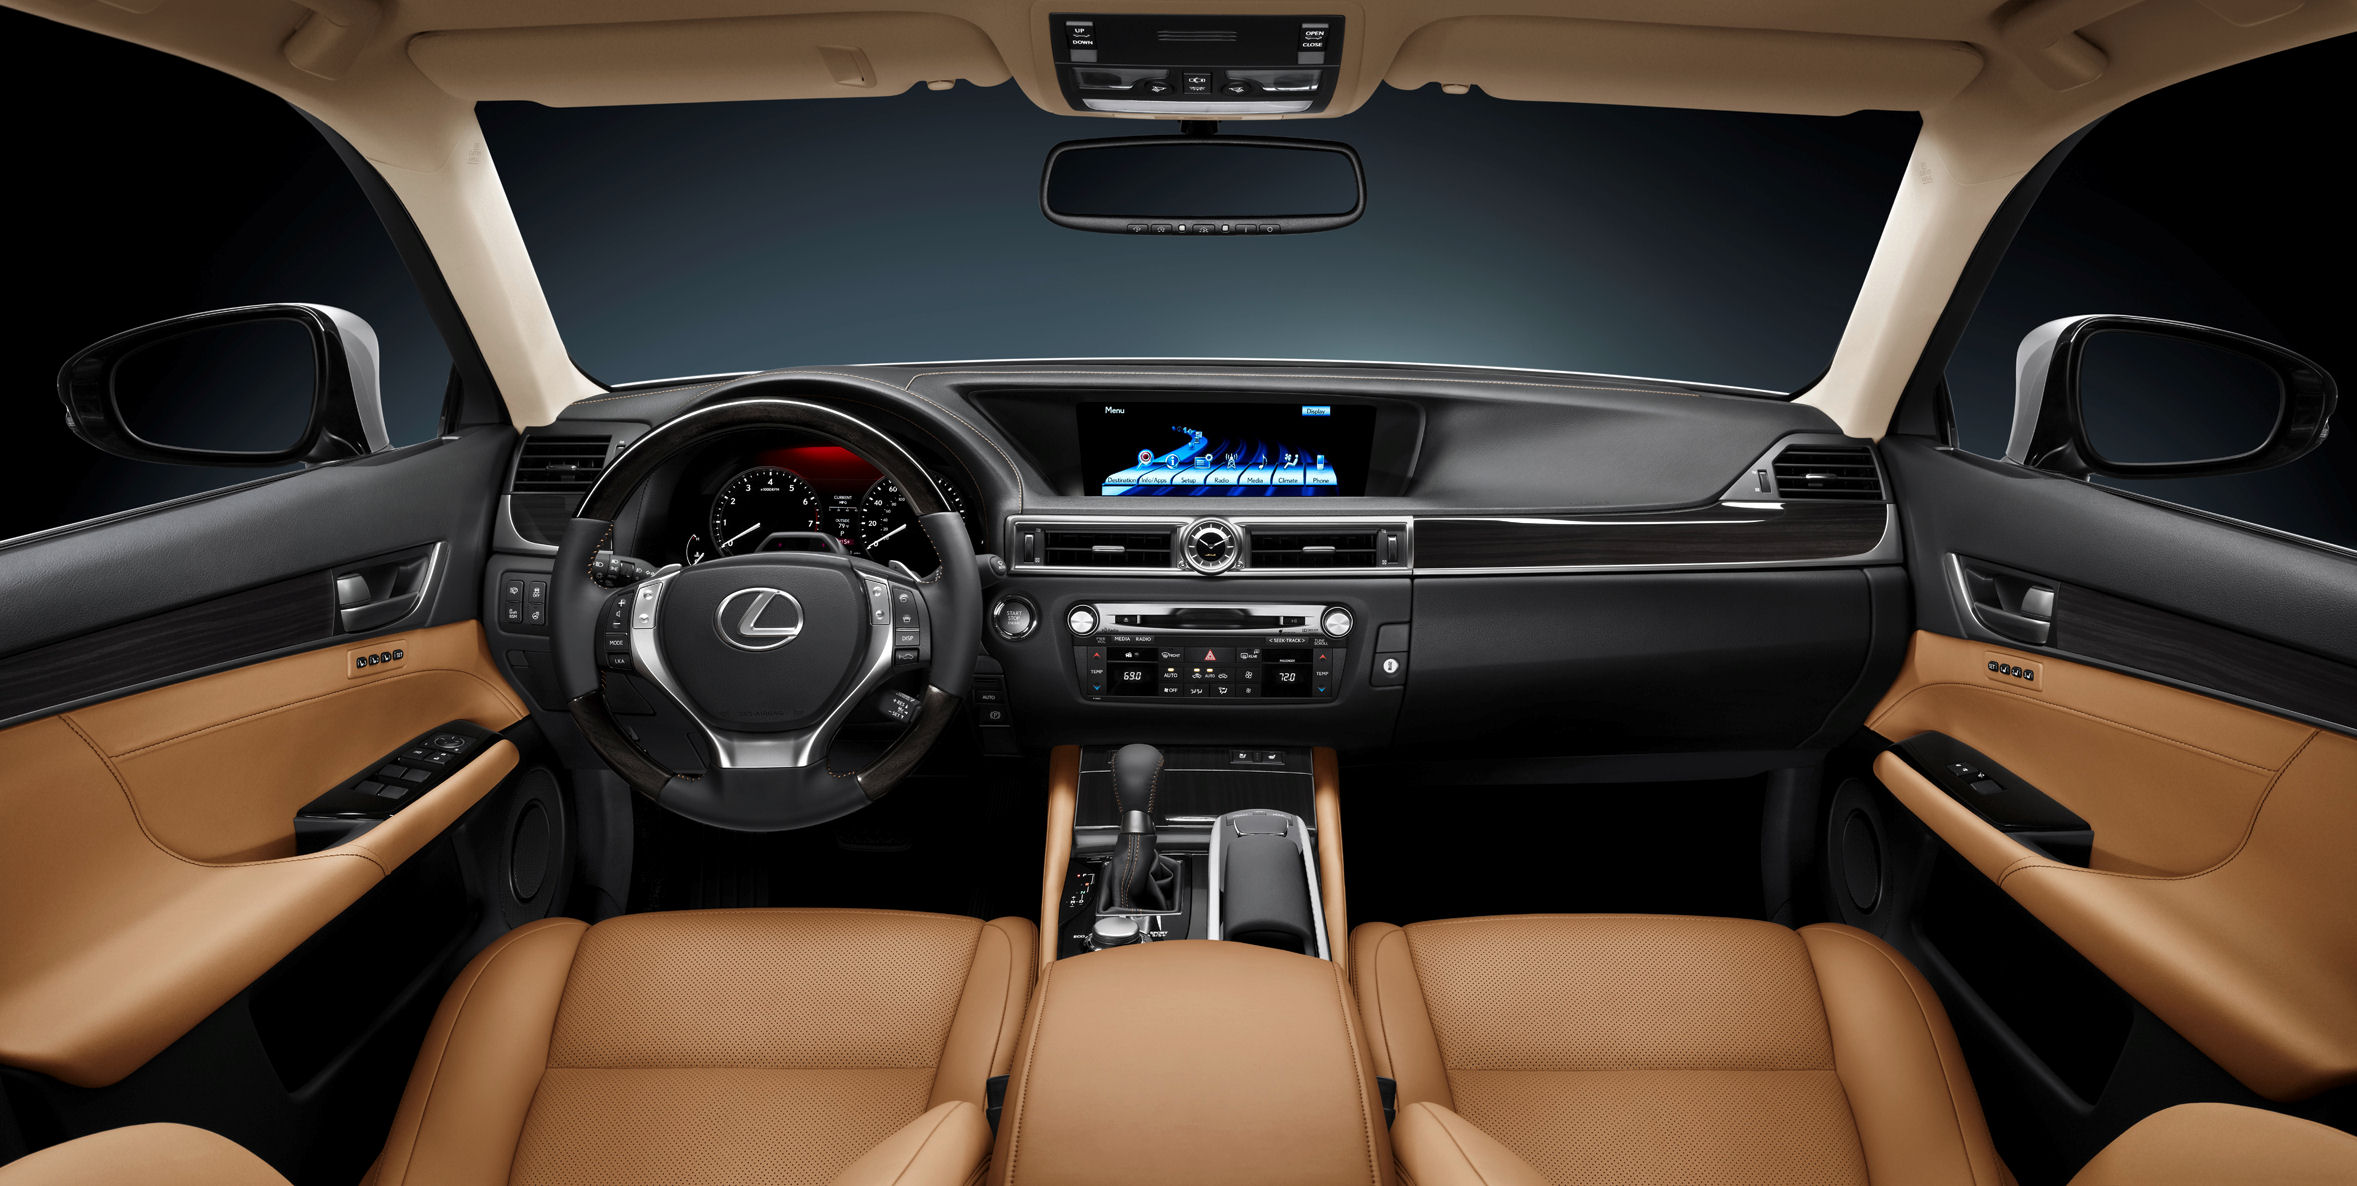 2009 Lexus Gs 350 Information And Photos Zombiedrive